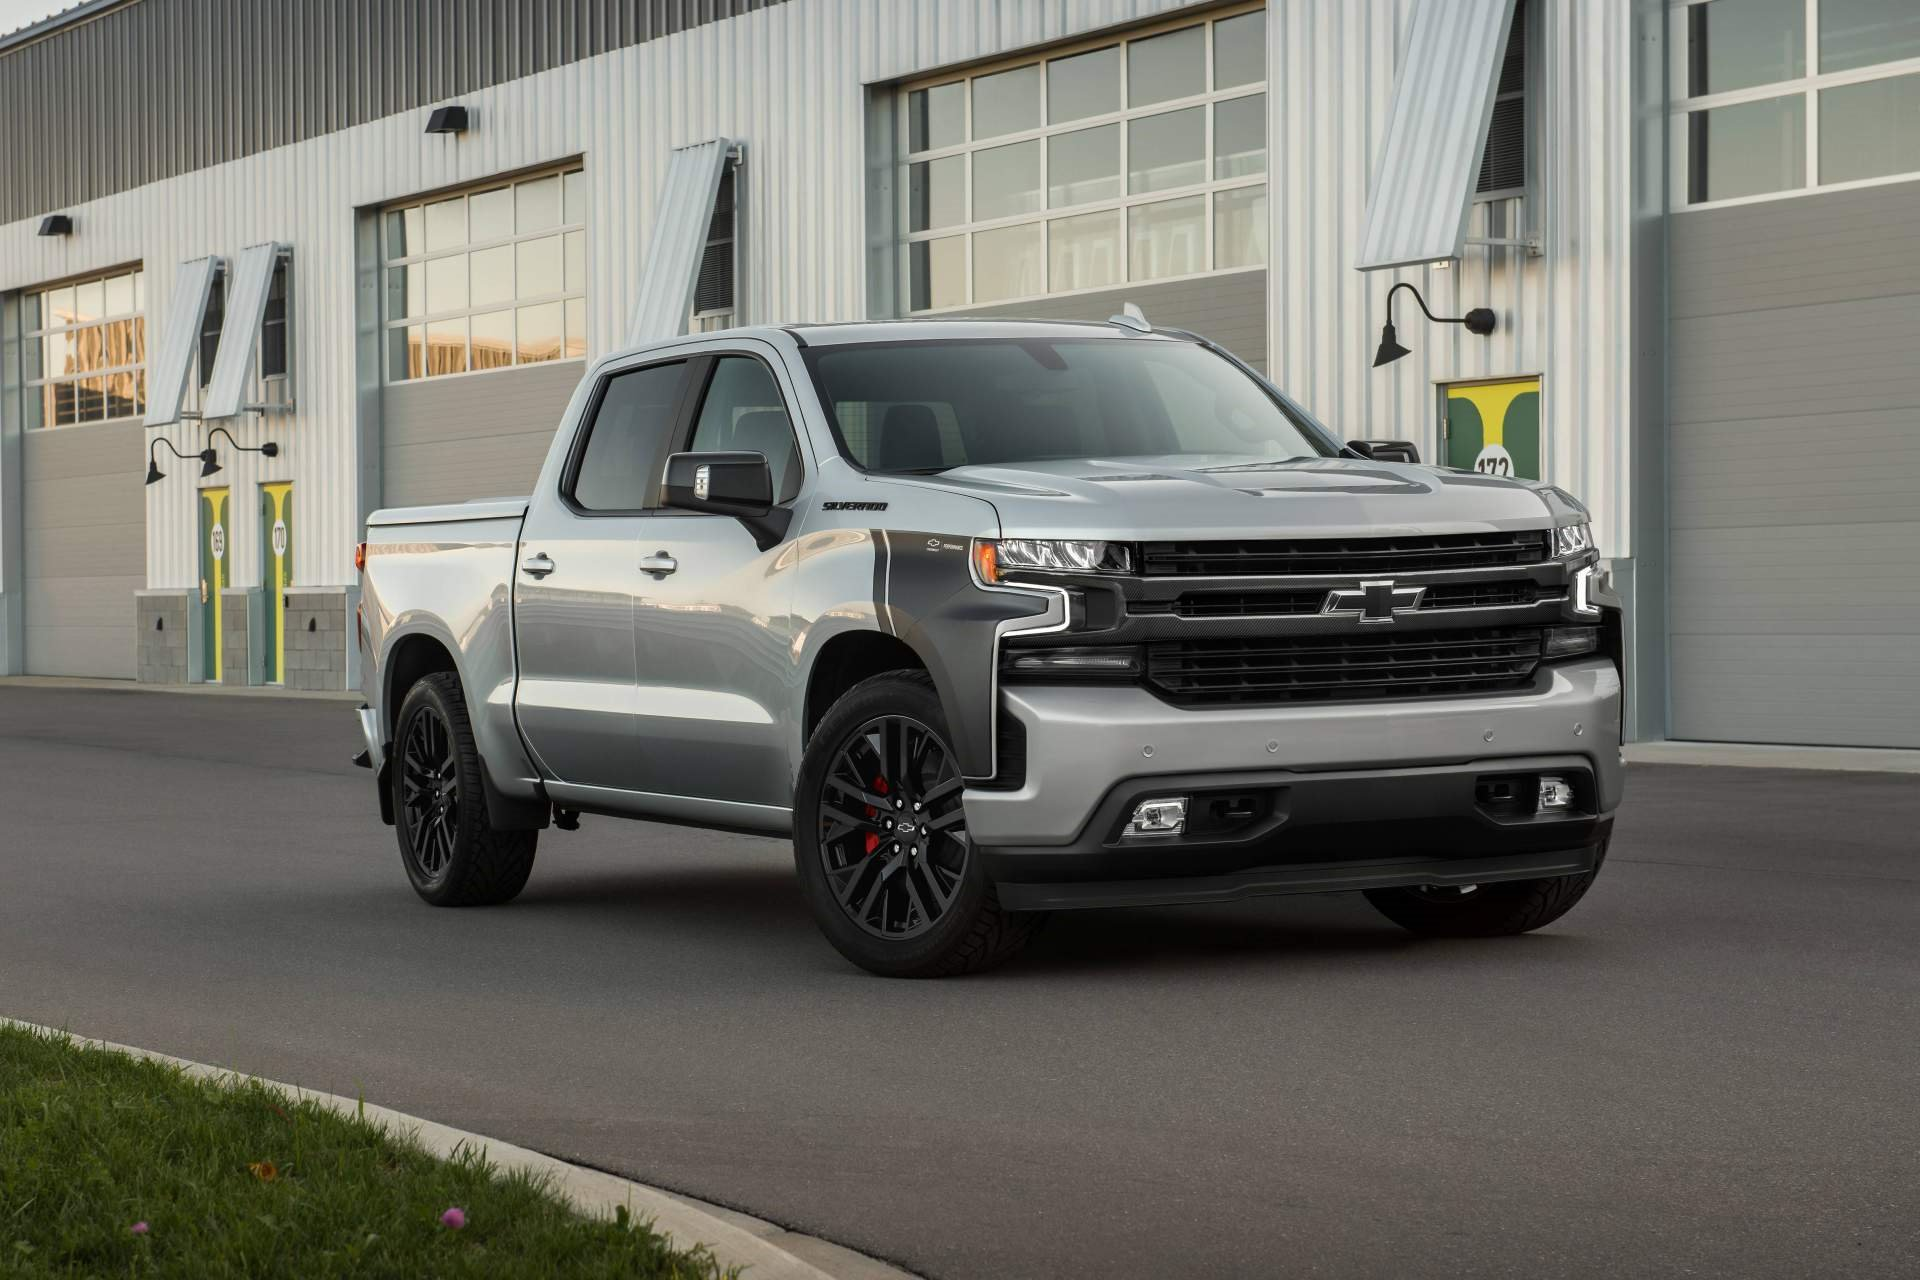 New 2019 Chevrolet-Silverado 1500 Custom Trail Boss Silverado 1500 Custom Trail Boss for sale $39,500 at M and V Leasing in Brooklyn NY 11223 1